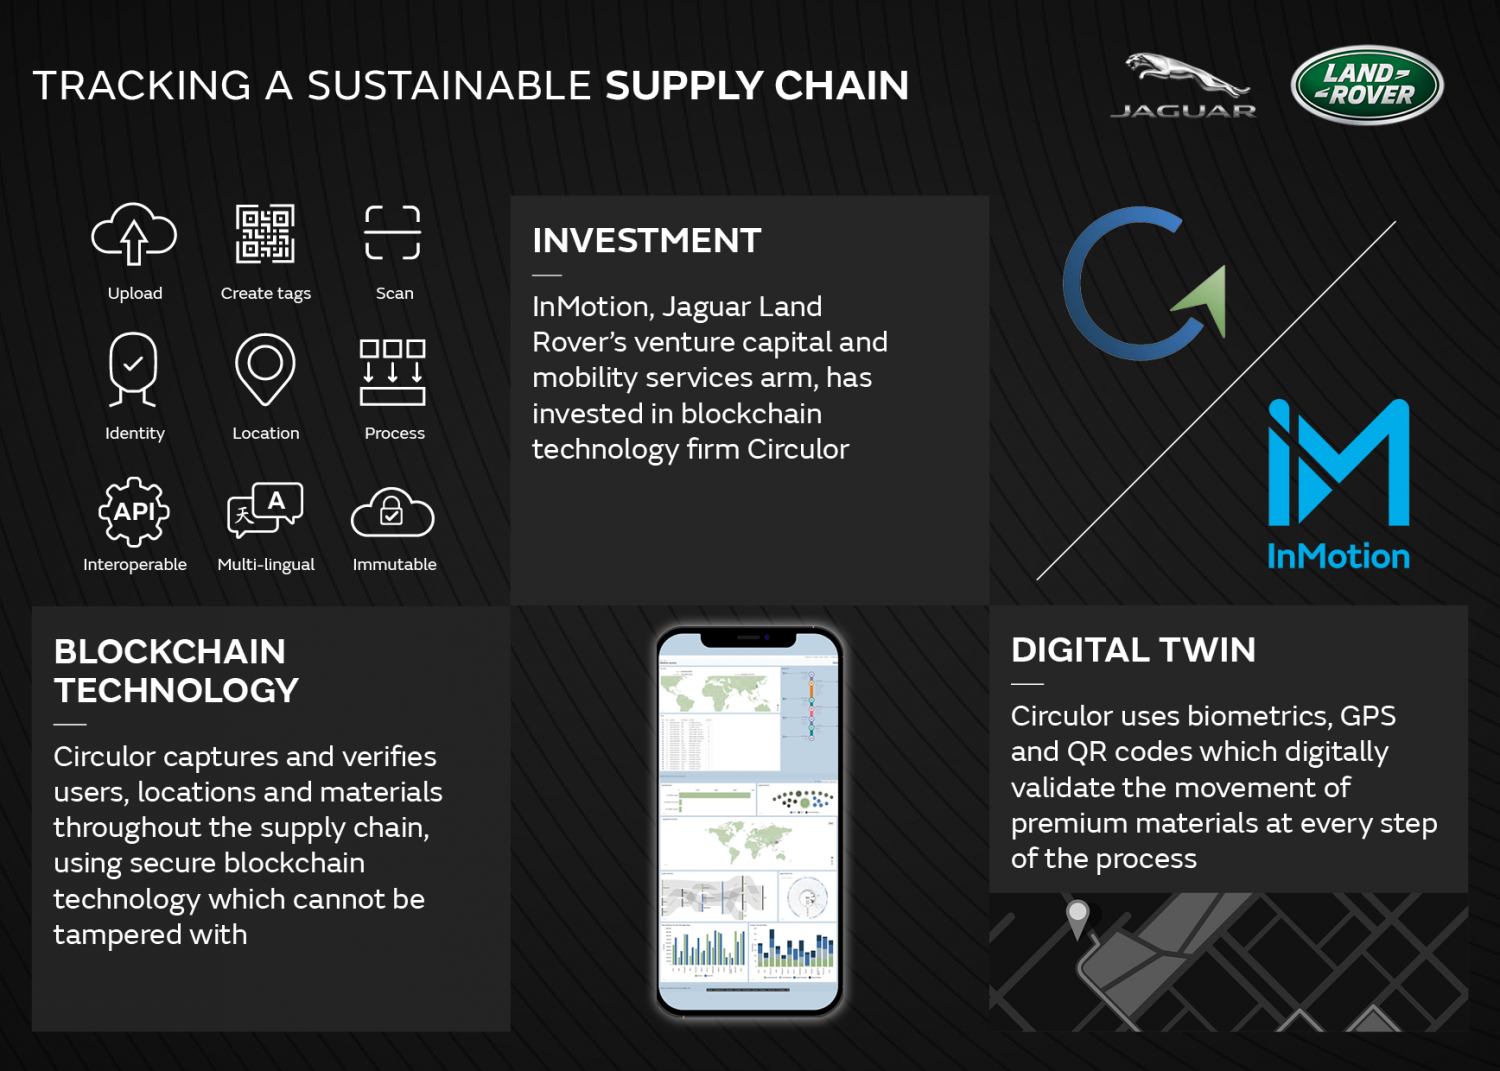 JLR' s venture arm invests in blockchain tech firm Circulor to trace raw materials